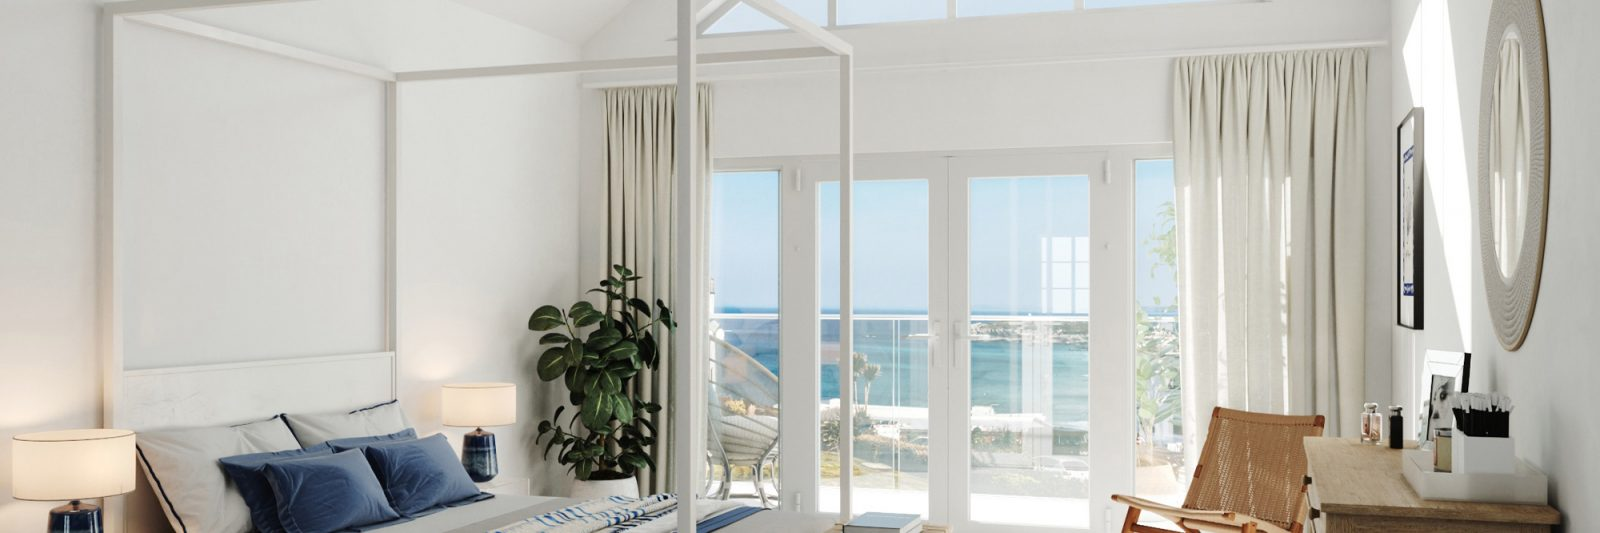 Stephens and stephens Developers Breakwater Pentire Avenue Newquay Cornwall Interior